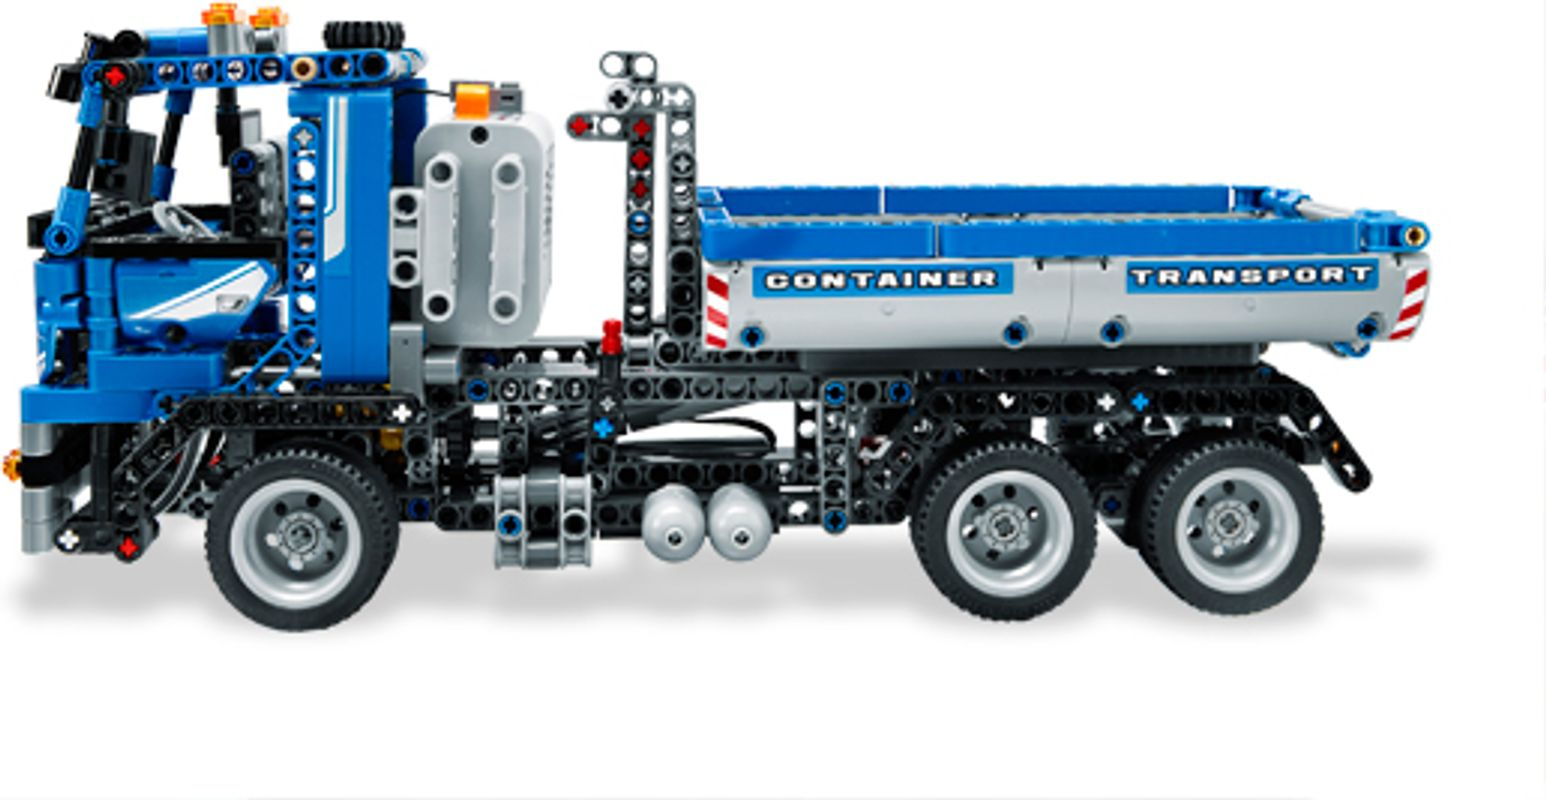 Container Truck components